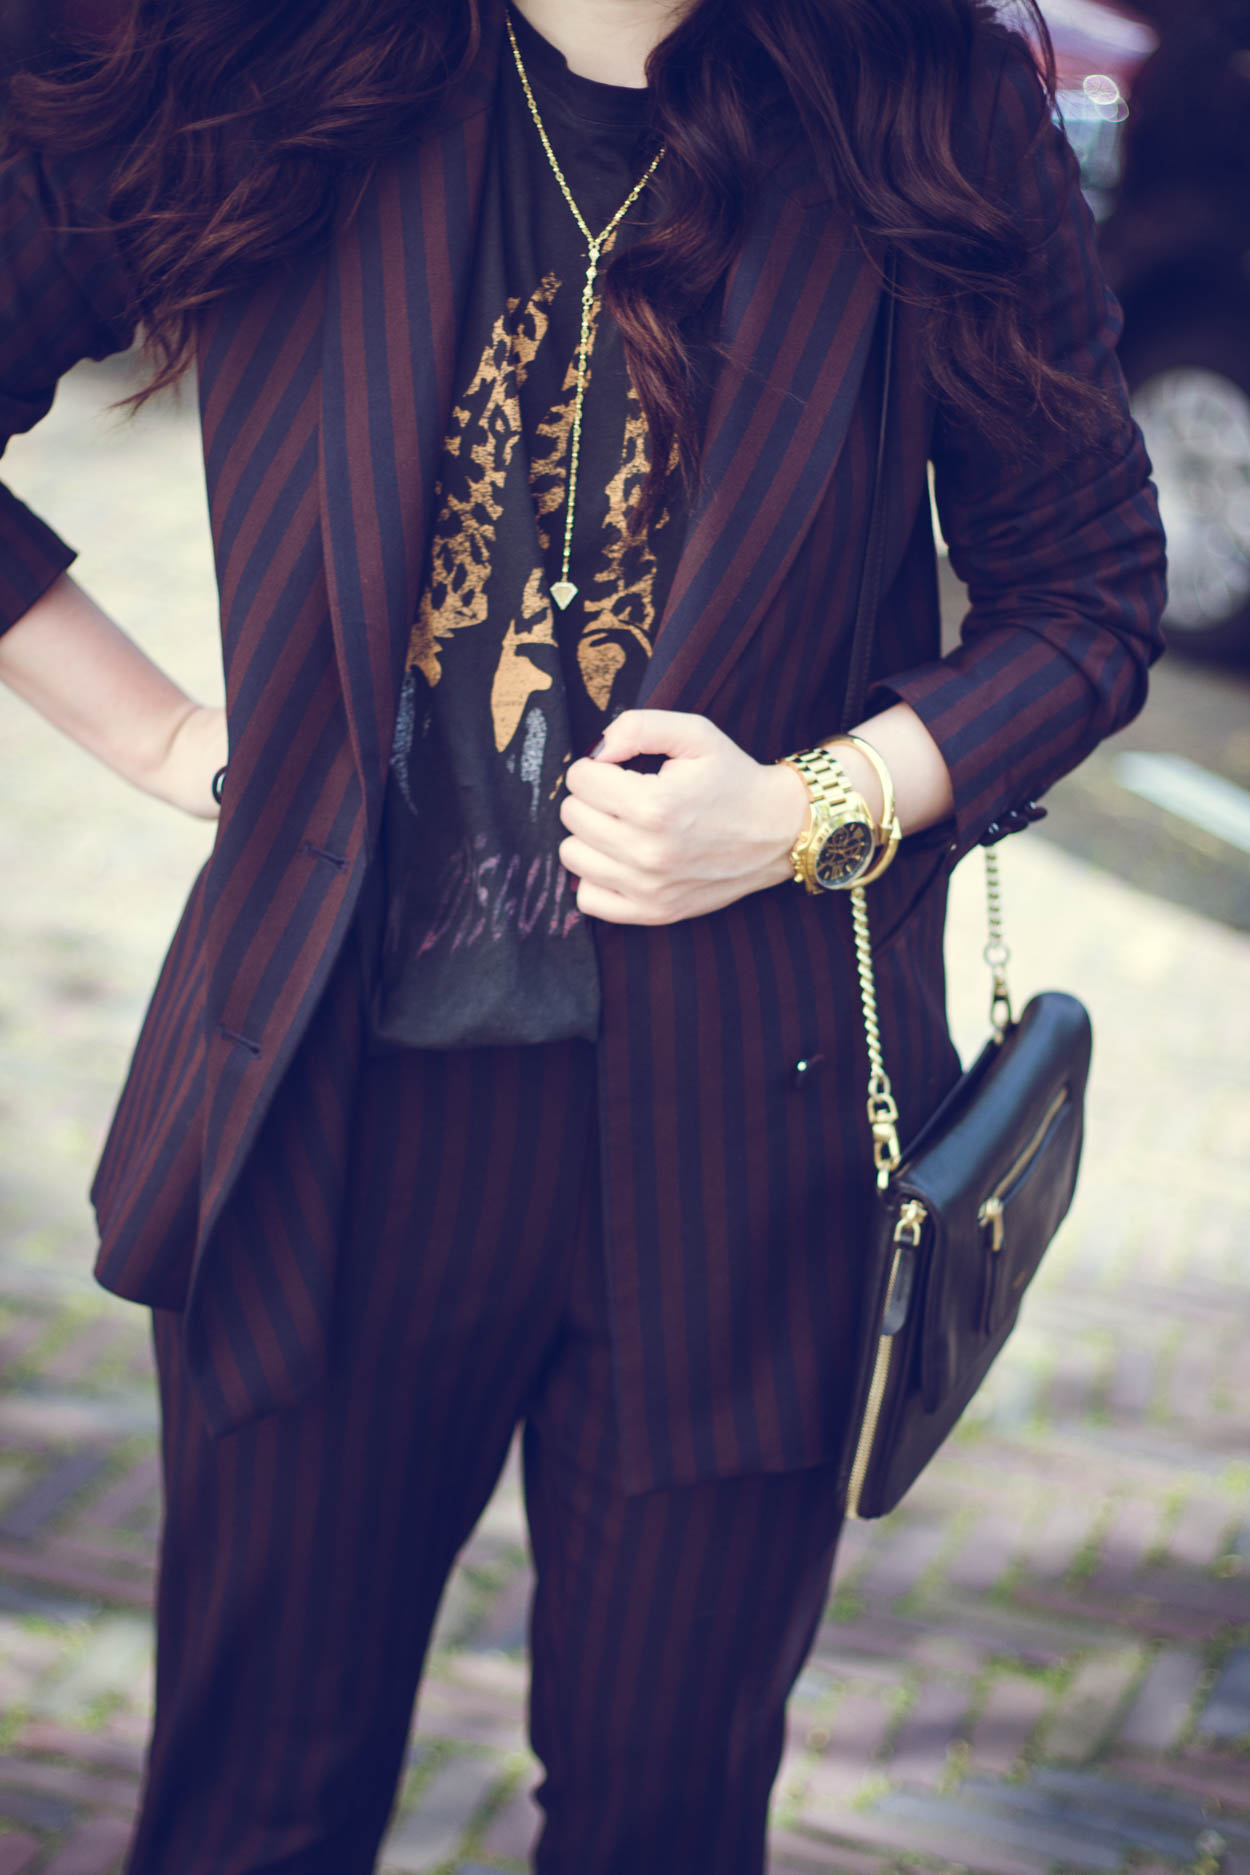 4 WORK WARDROBE OUTFITS | THECHICITALIAN | The power suit is for the true girlboss who wants to feel empowered